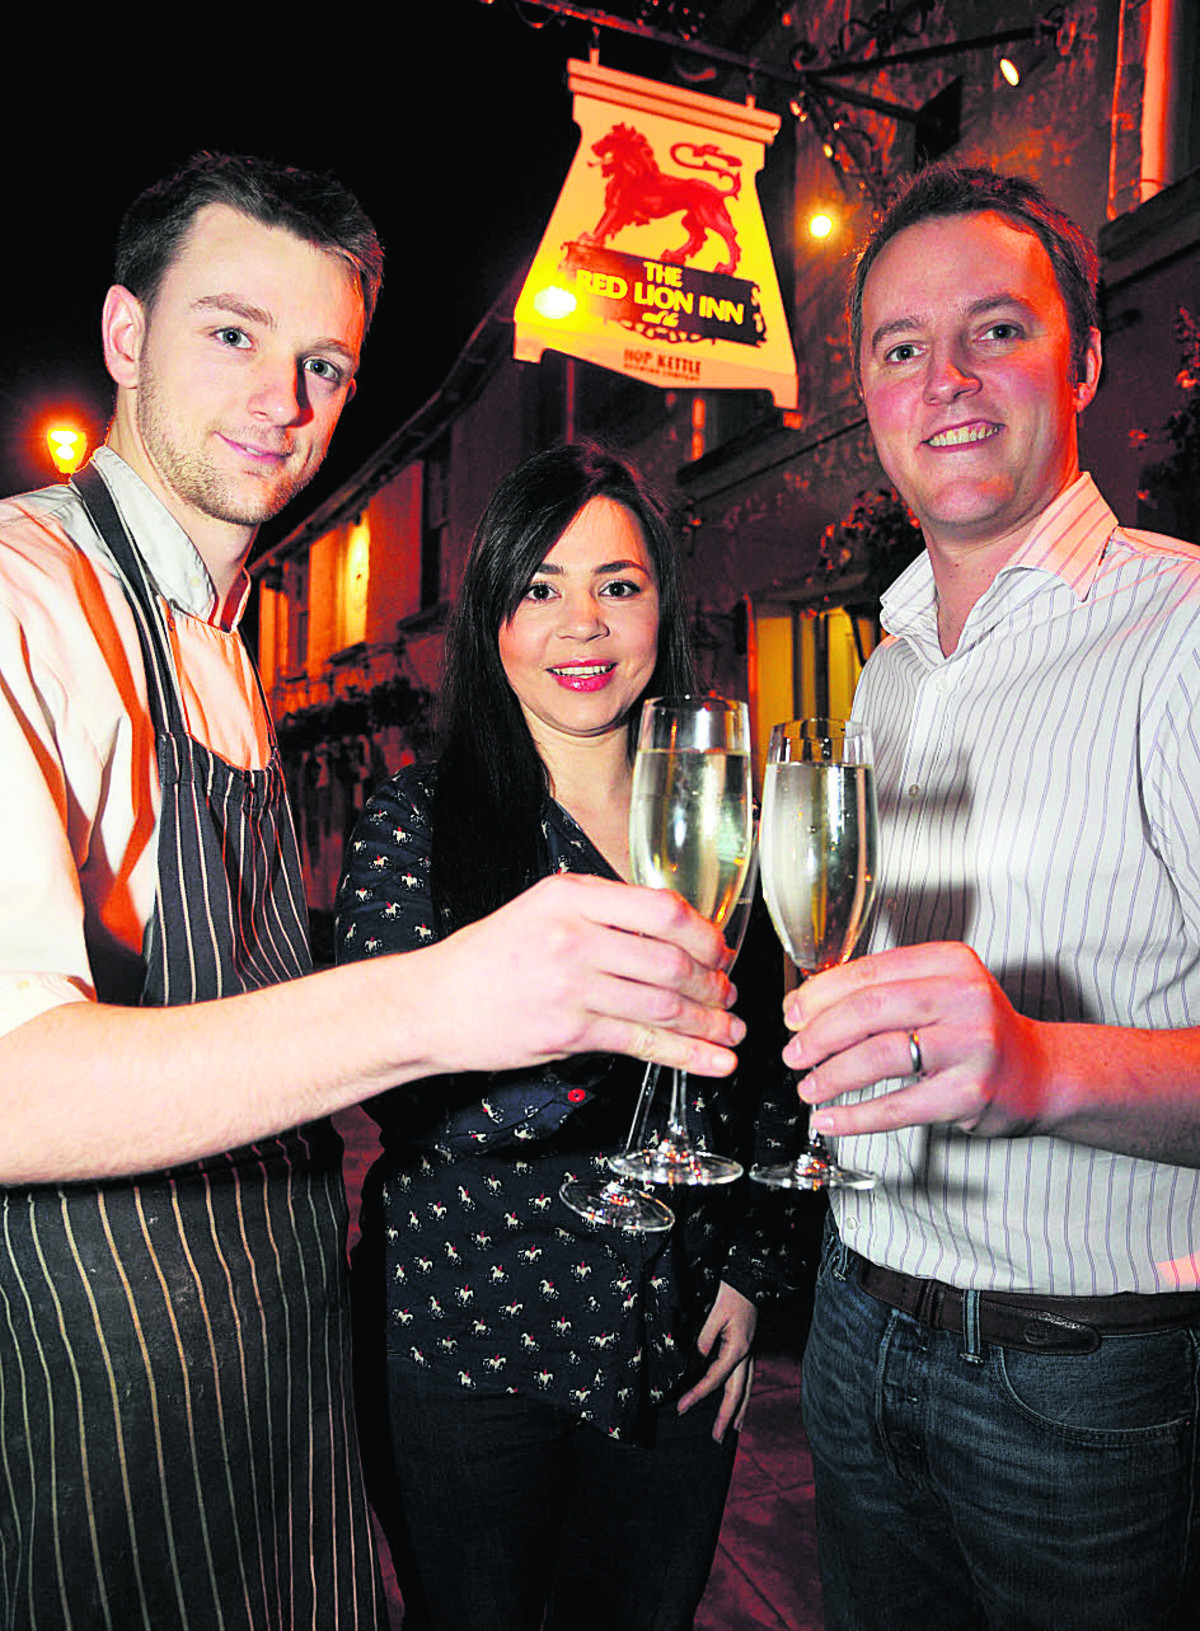 From left, Red Lion head chef Chris White, manager Fernanda Carval and owner Tom Gee. Picture: DAVE COX